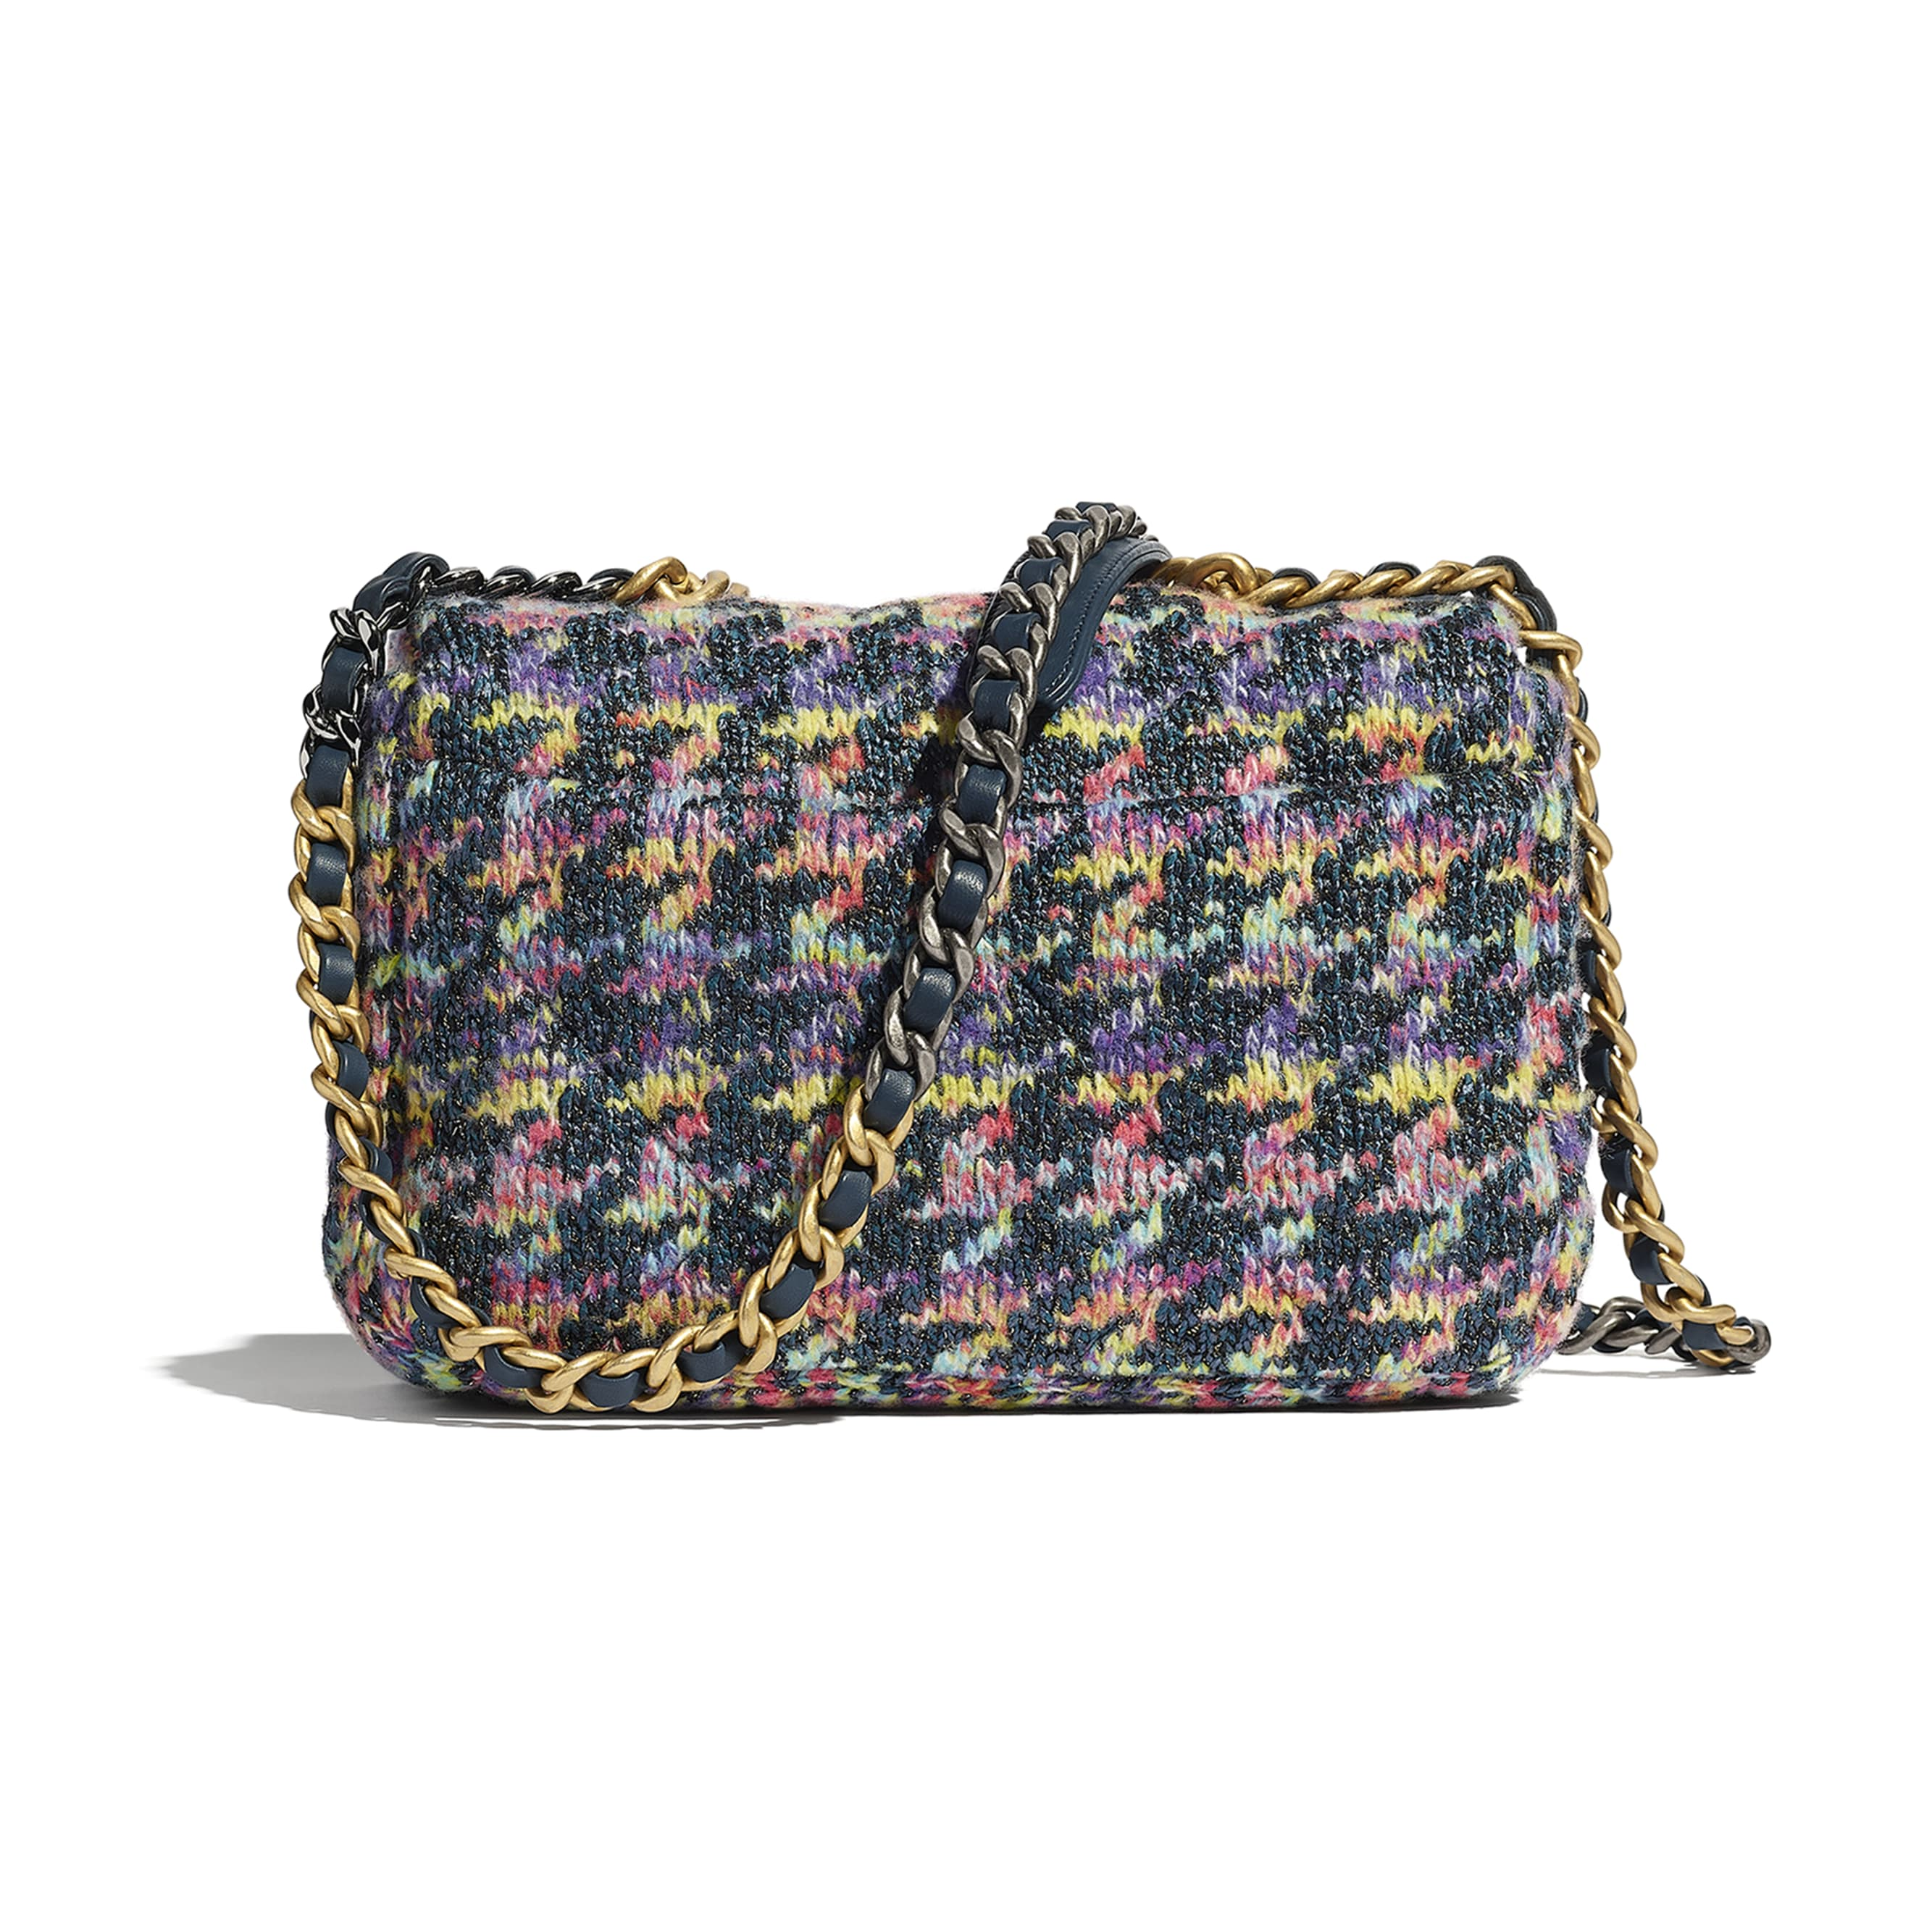 CHANEL 19 Flap Bag - Multicolour - Knit, Gold-Tone, Silver-Tone & Ruthenium-Finish Metal - CHANEL - Alternative view - see standard sized version